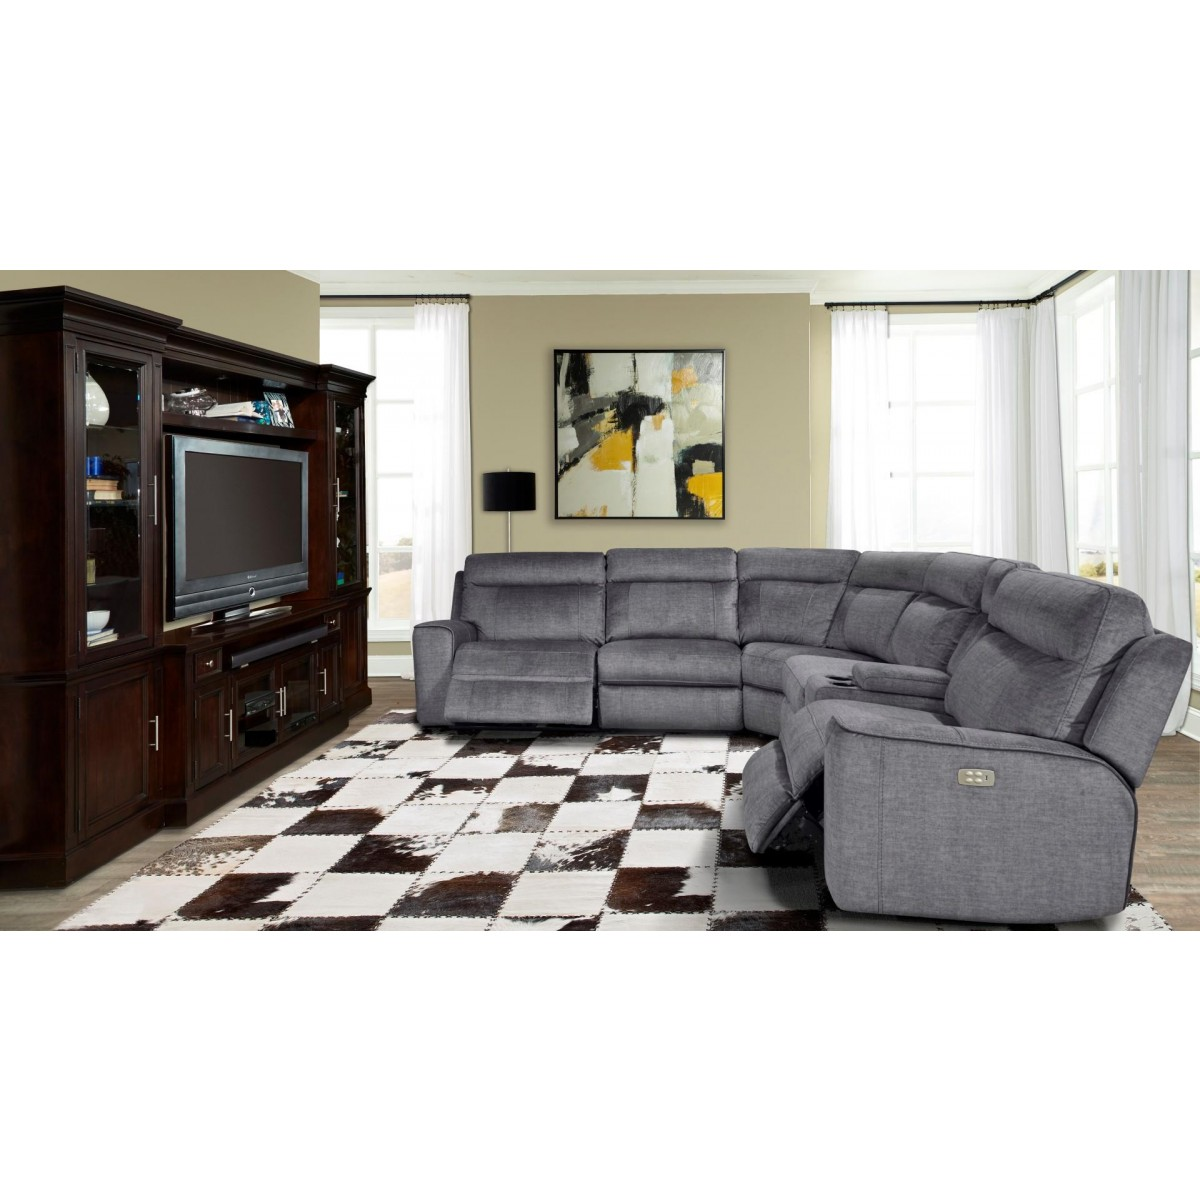 Contemporary luxury furniture living room bedroom la for Best furniture stores in usa